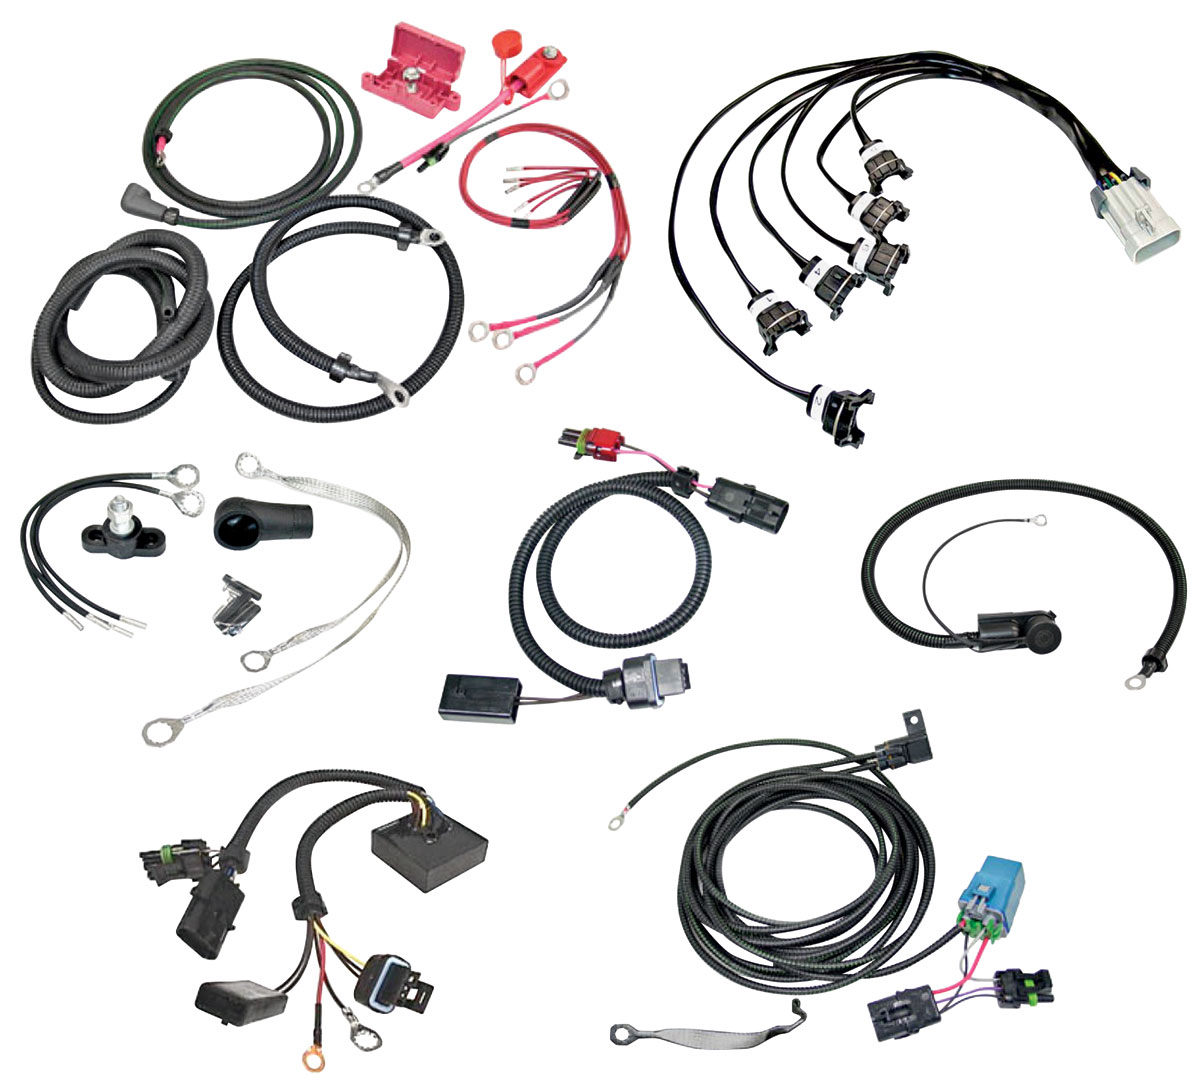 Harness, Wiring Upgrade Set Fits 1986-87 T-Type @ OPGI.com